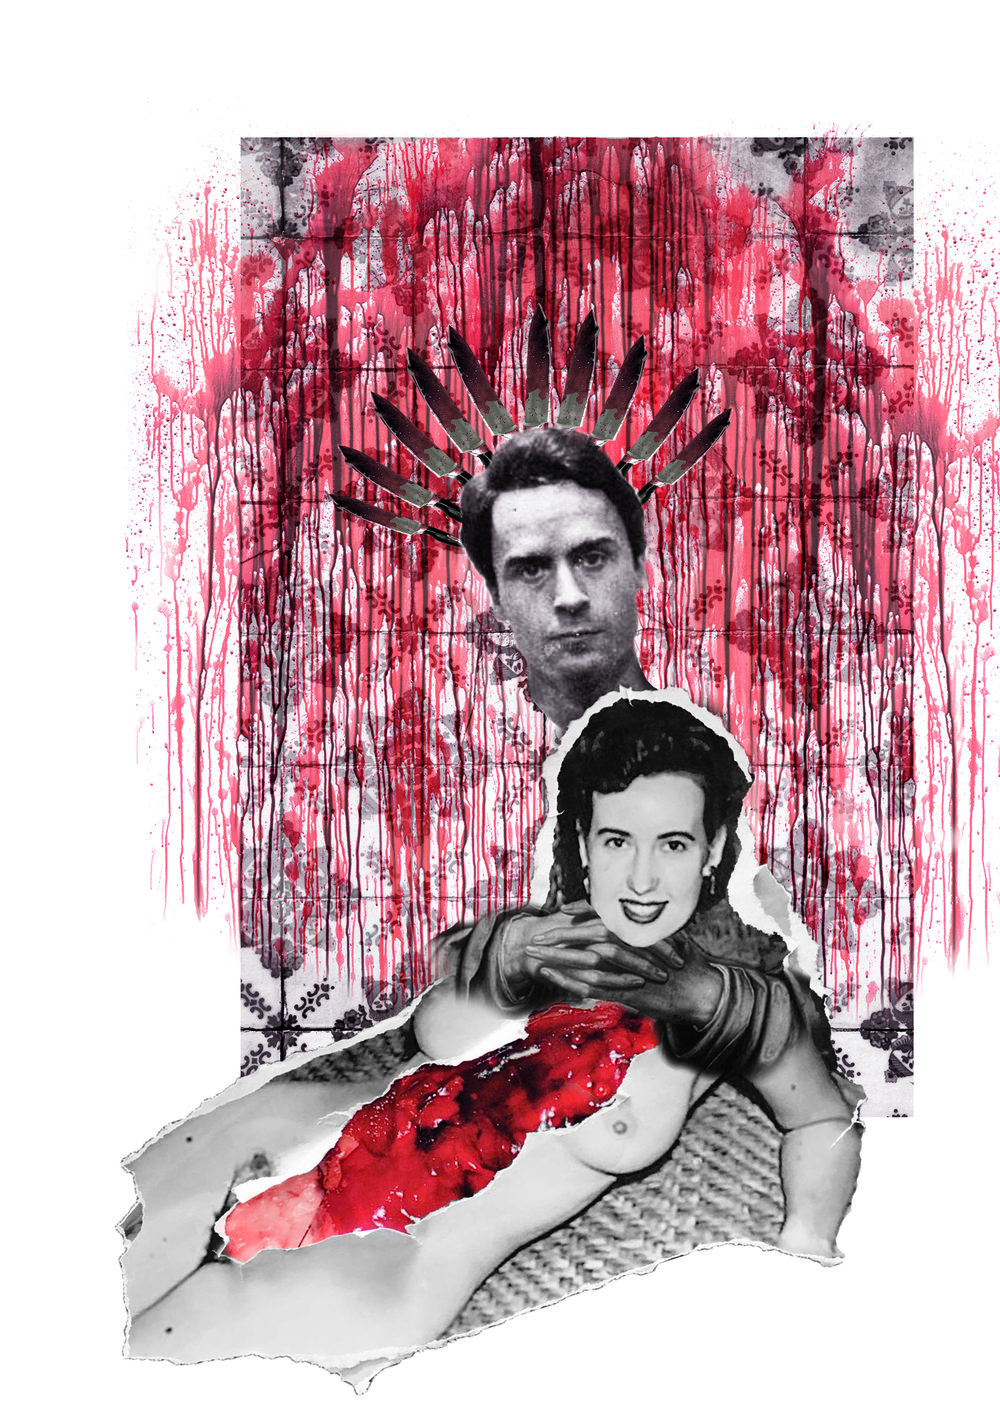 """Collage for a newspaper article on  """" Hybristophilia """", a condition in wich women tent to feel a strong affections towards convictes of sexual abuse. This Image refers specifically to Ted Bundy, a well known serial murder that received a lot of media attention and an incredible high amount of marriage proposals while incarcerated."""